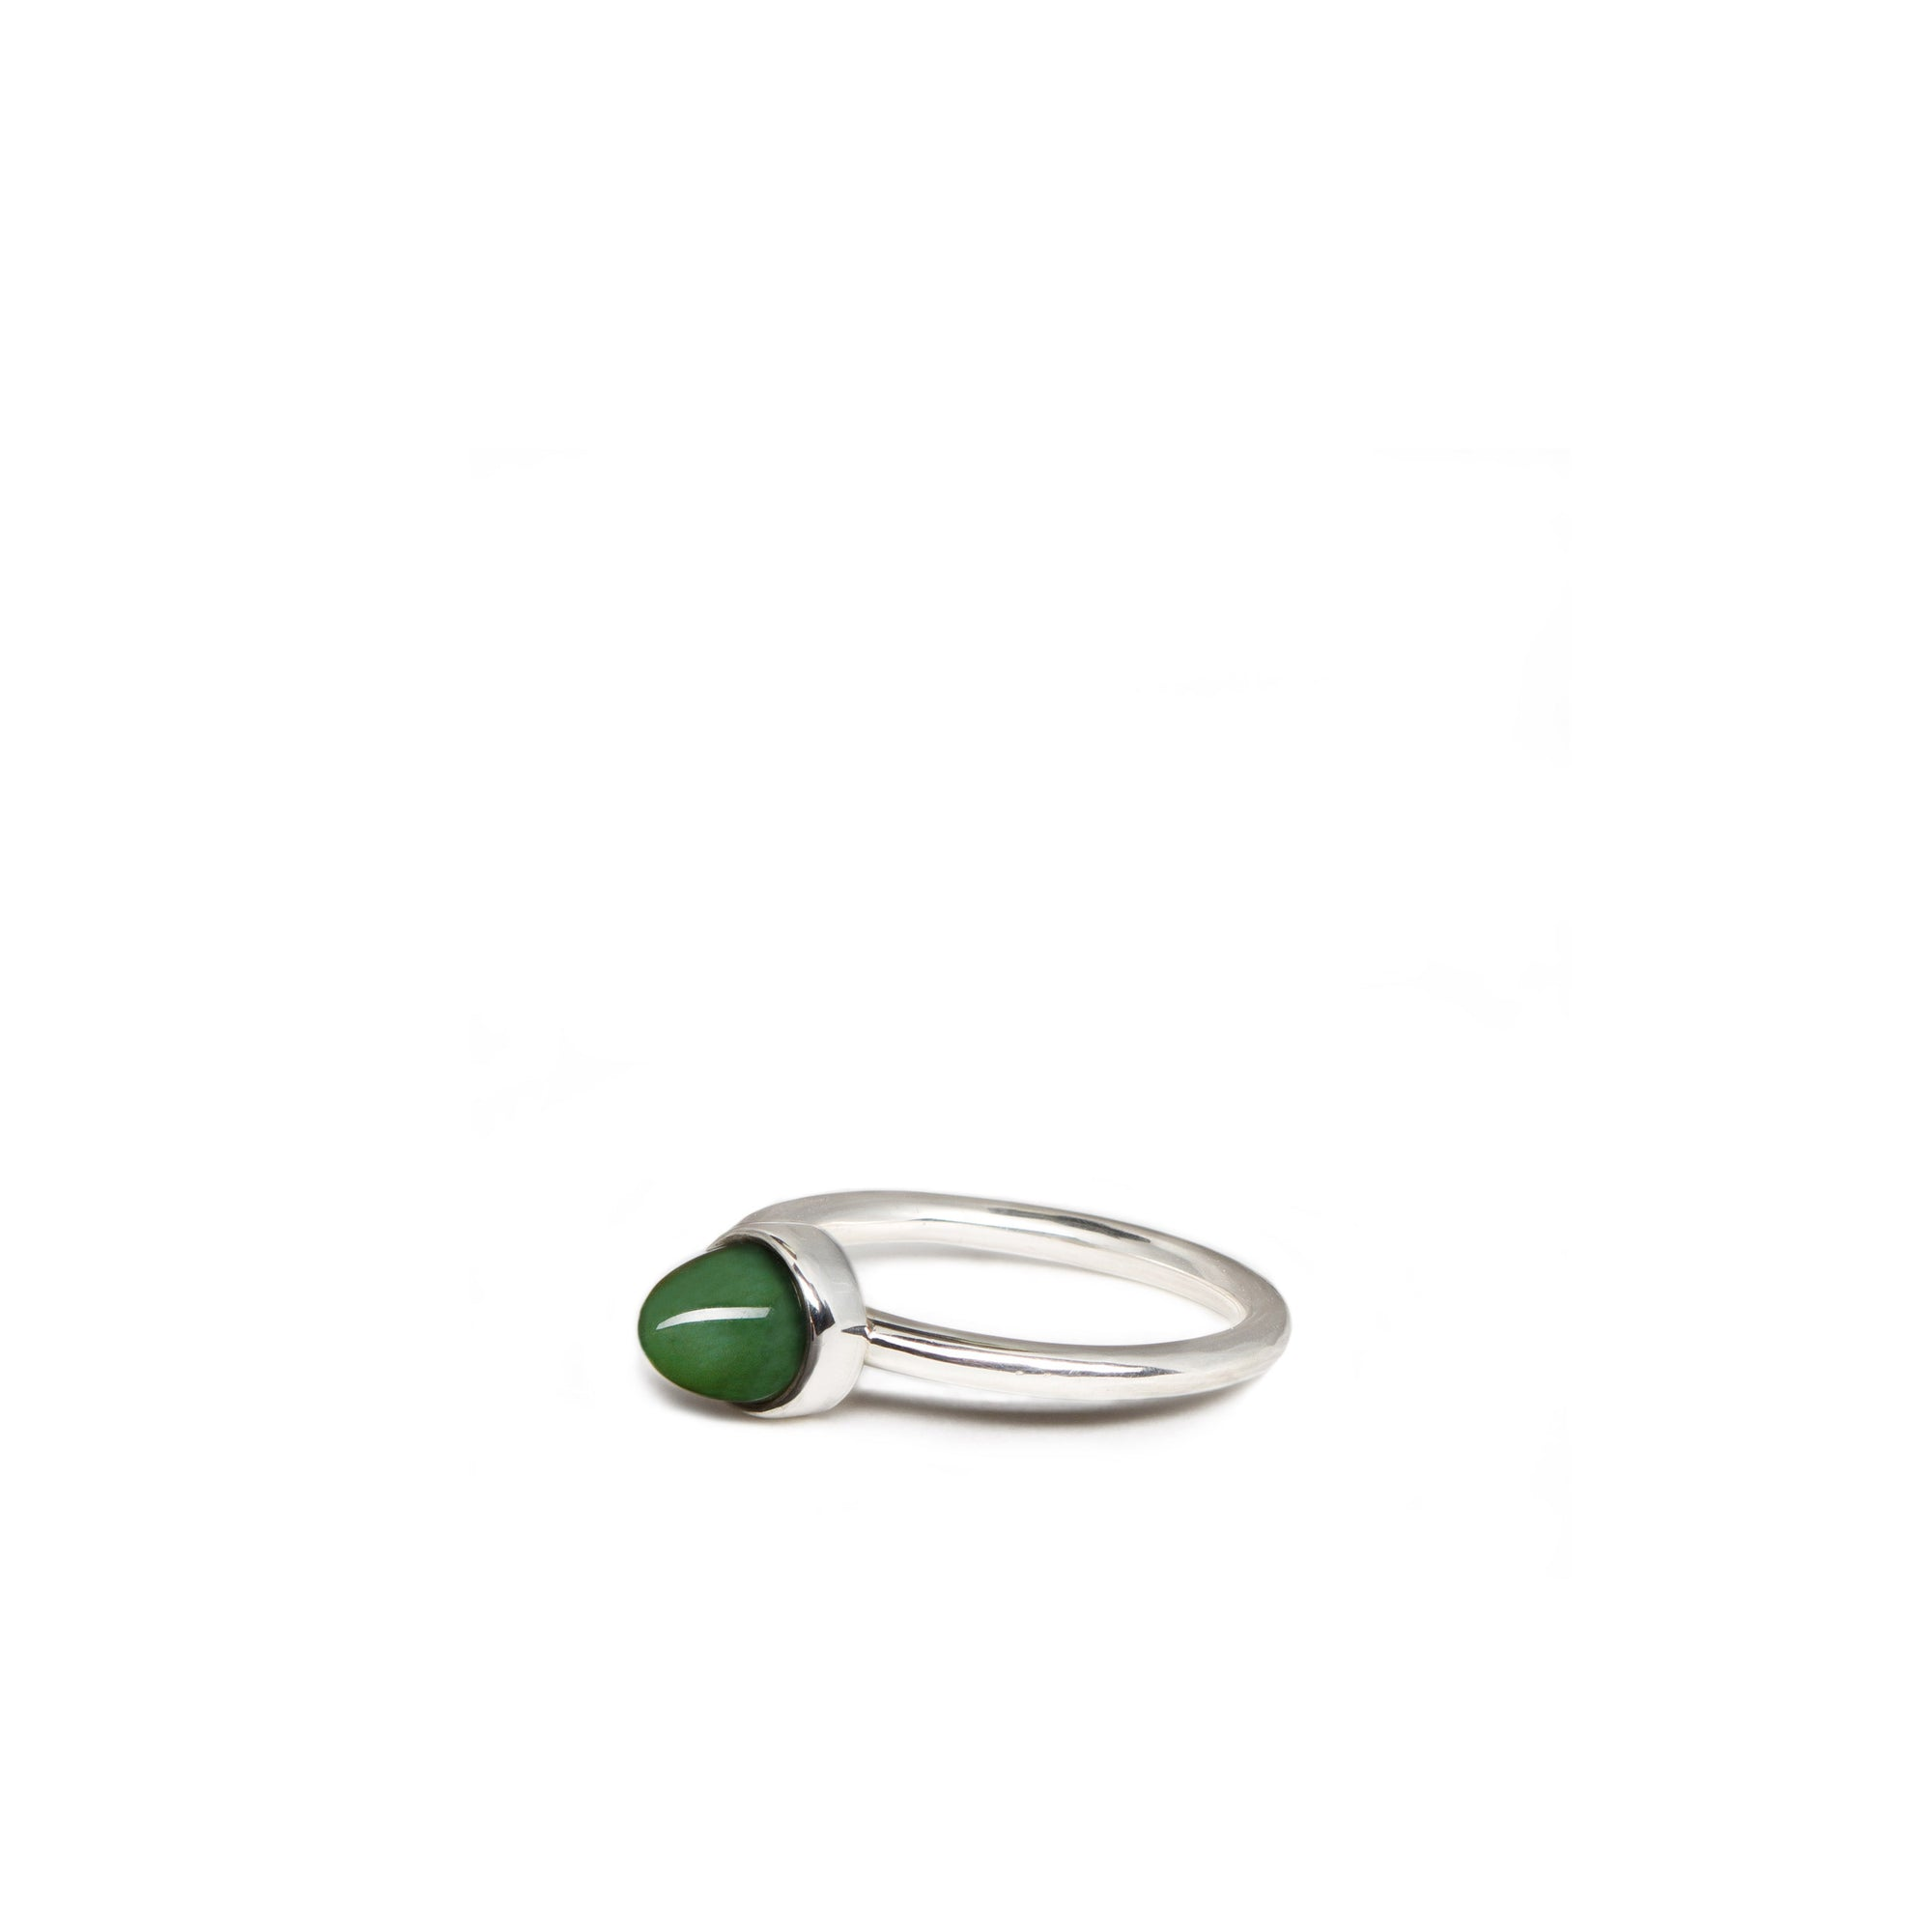 New Zealand Jade Domed Ring - Size L